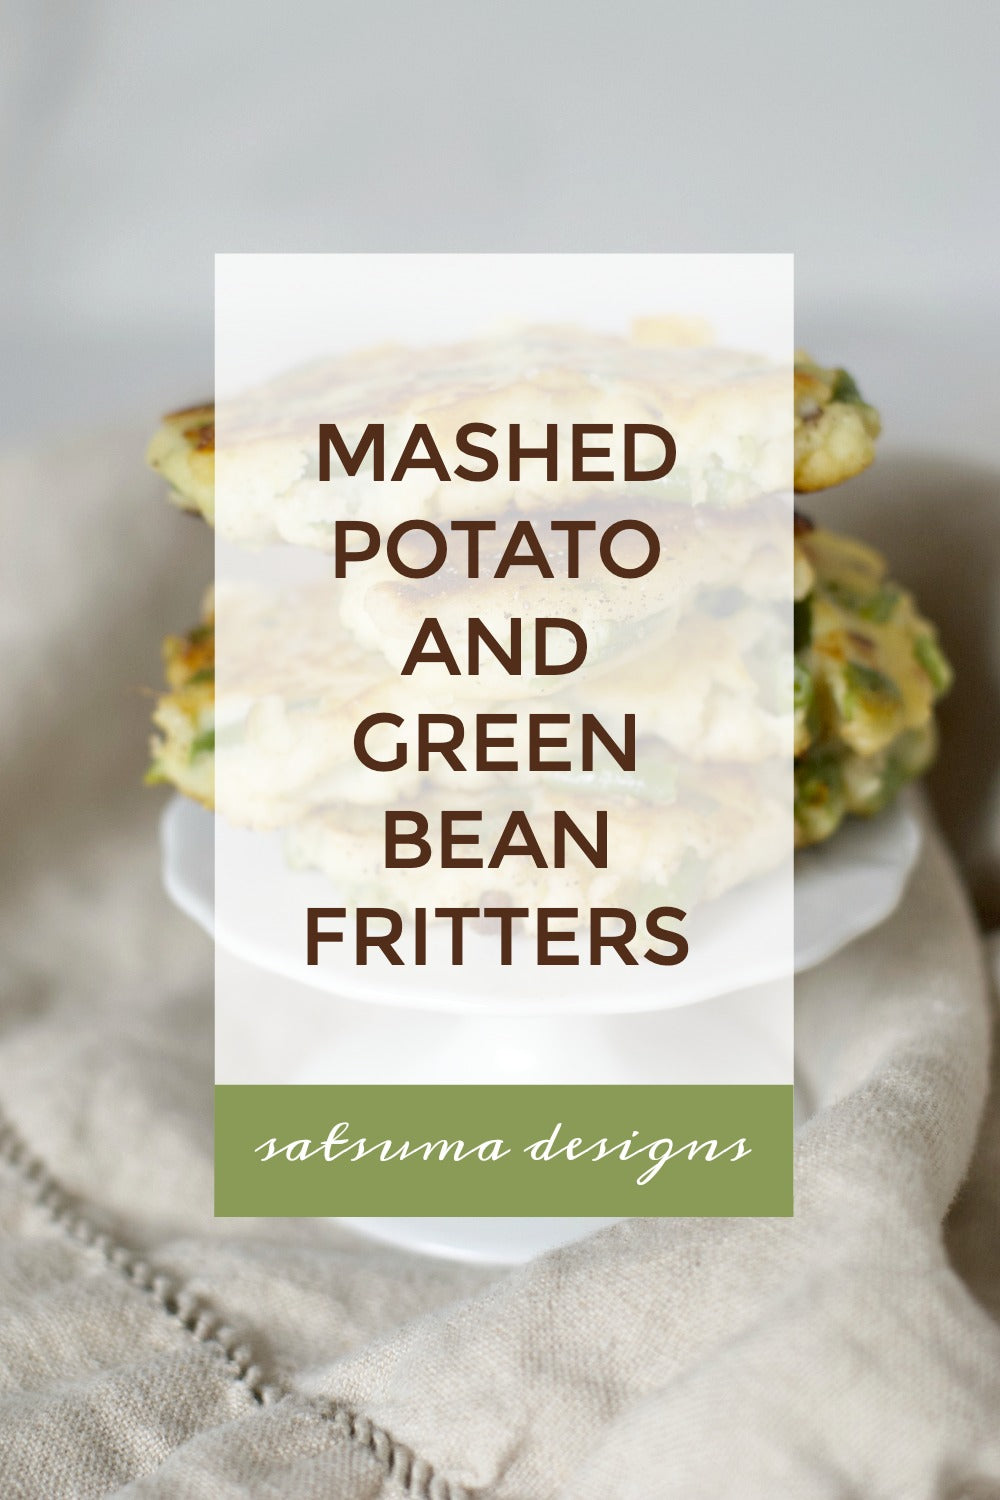 Mashed potato and green bean fritter recipe. This is a perfect solution to left over mashed potatoes and makes a delicious side dish or afternoon snack. Even pair these with a fried egg for a yummy breakfast! #fritters #recipes #mashedpotatos #greenbeans #dinnerrecipes